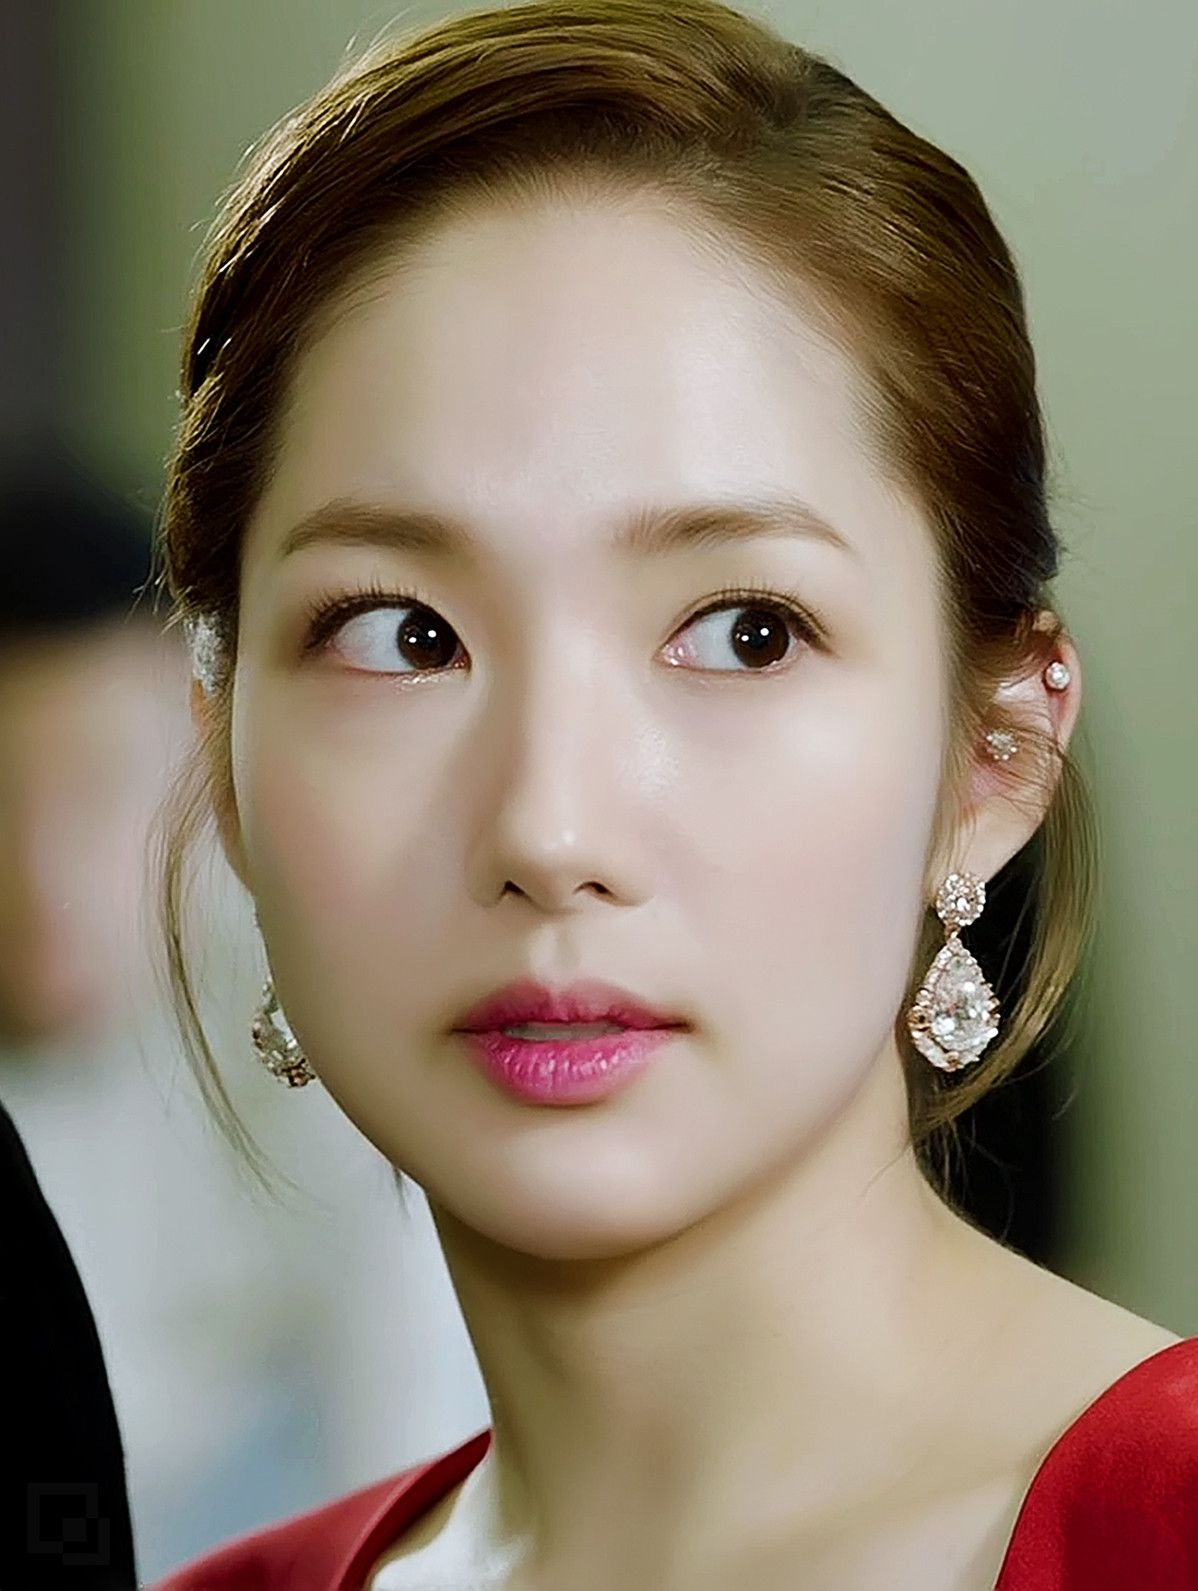 Park Min Young S Character Transformed In A Scene From Korean Drama Healer She Sparkles And Shines In This Role Park Min Young Ear Piercings Young